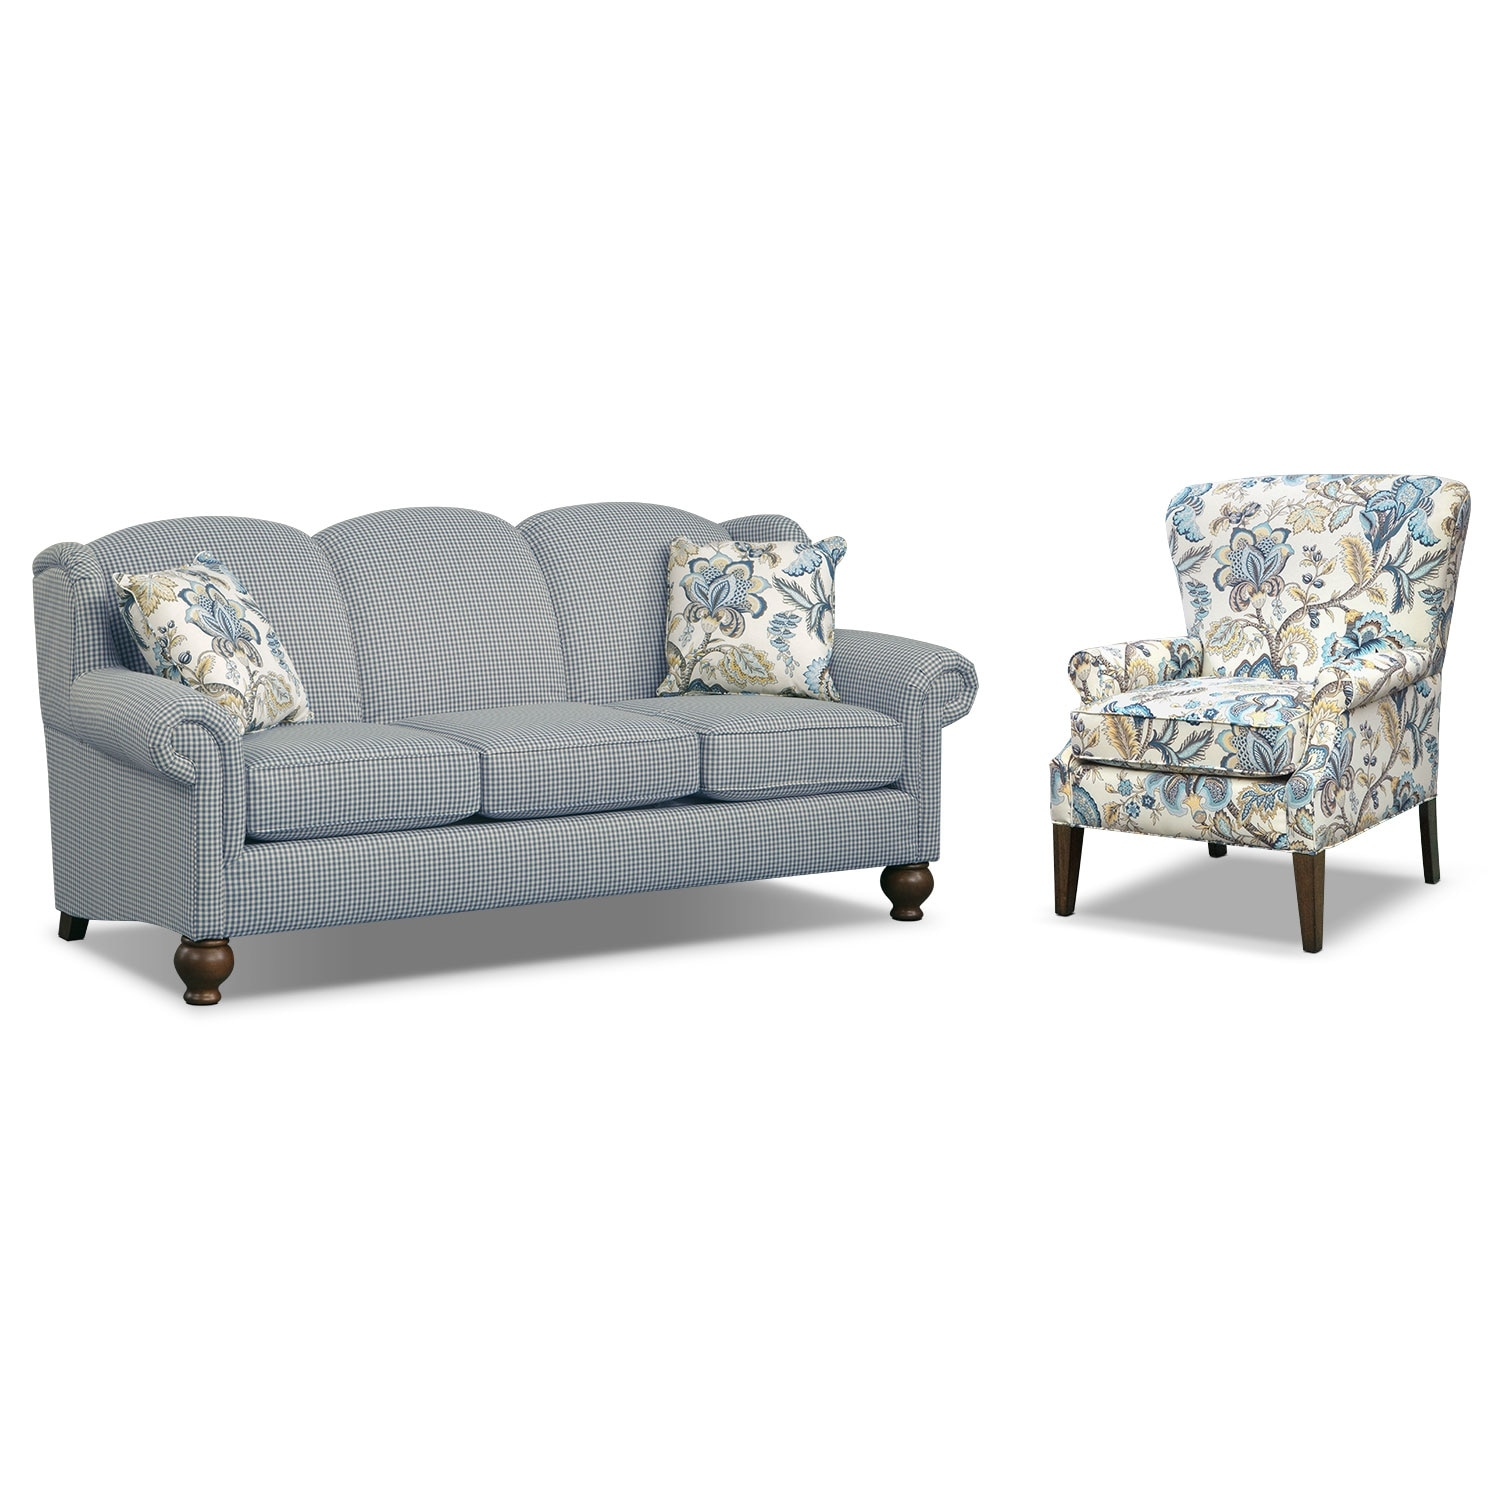 Living Room With Mismatched Accent Chairs: Charlotte III 2 Pc. Living Room W/Accent Chair